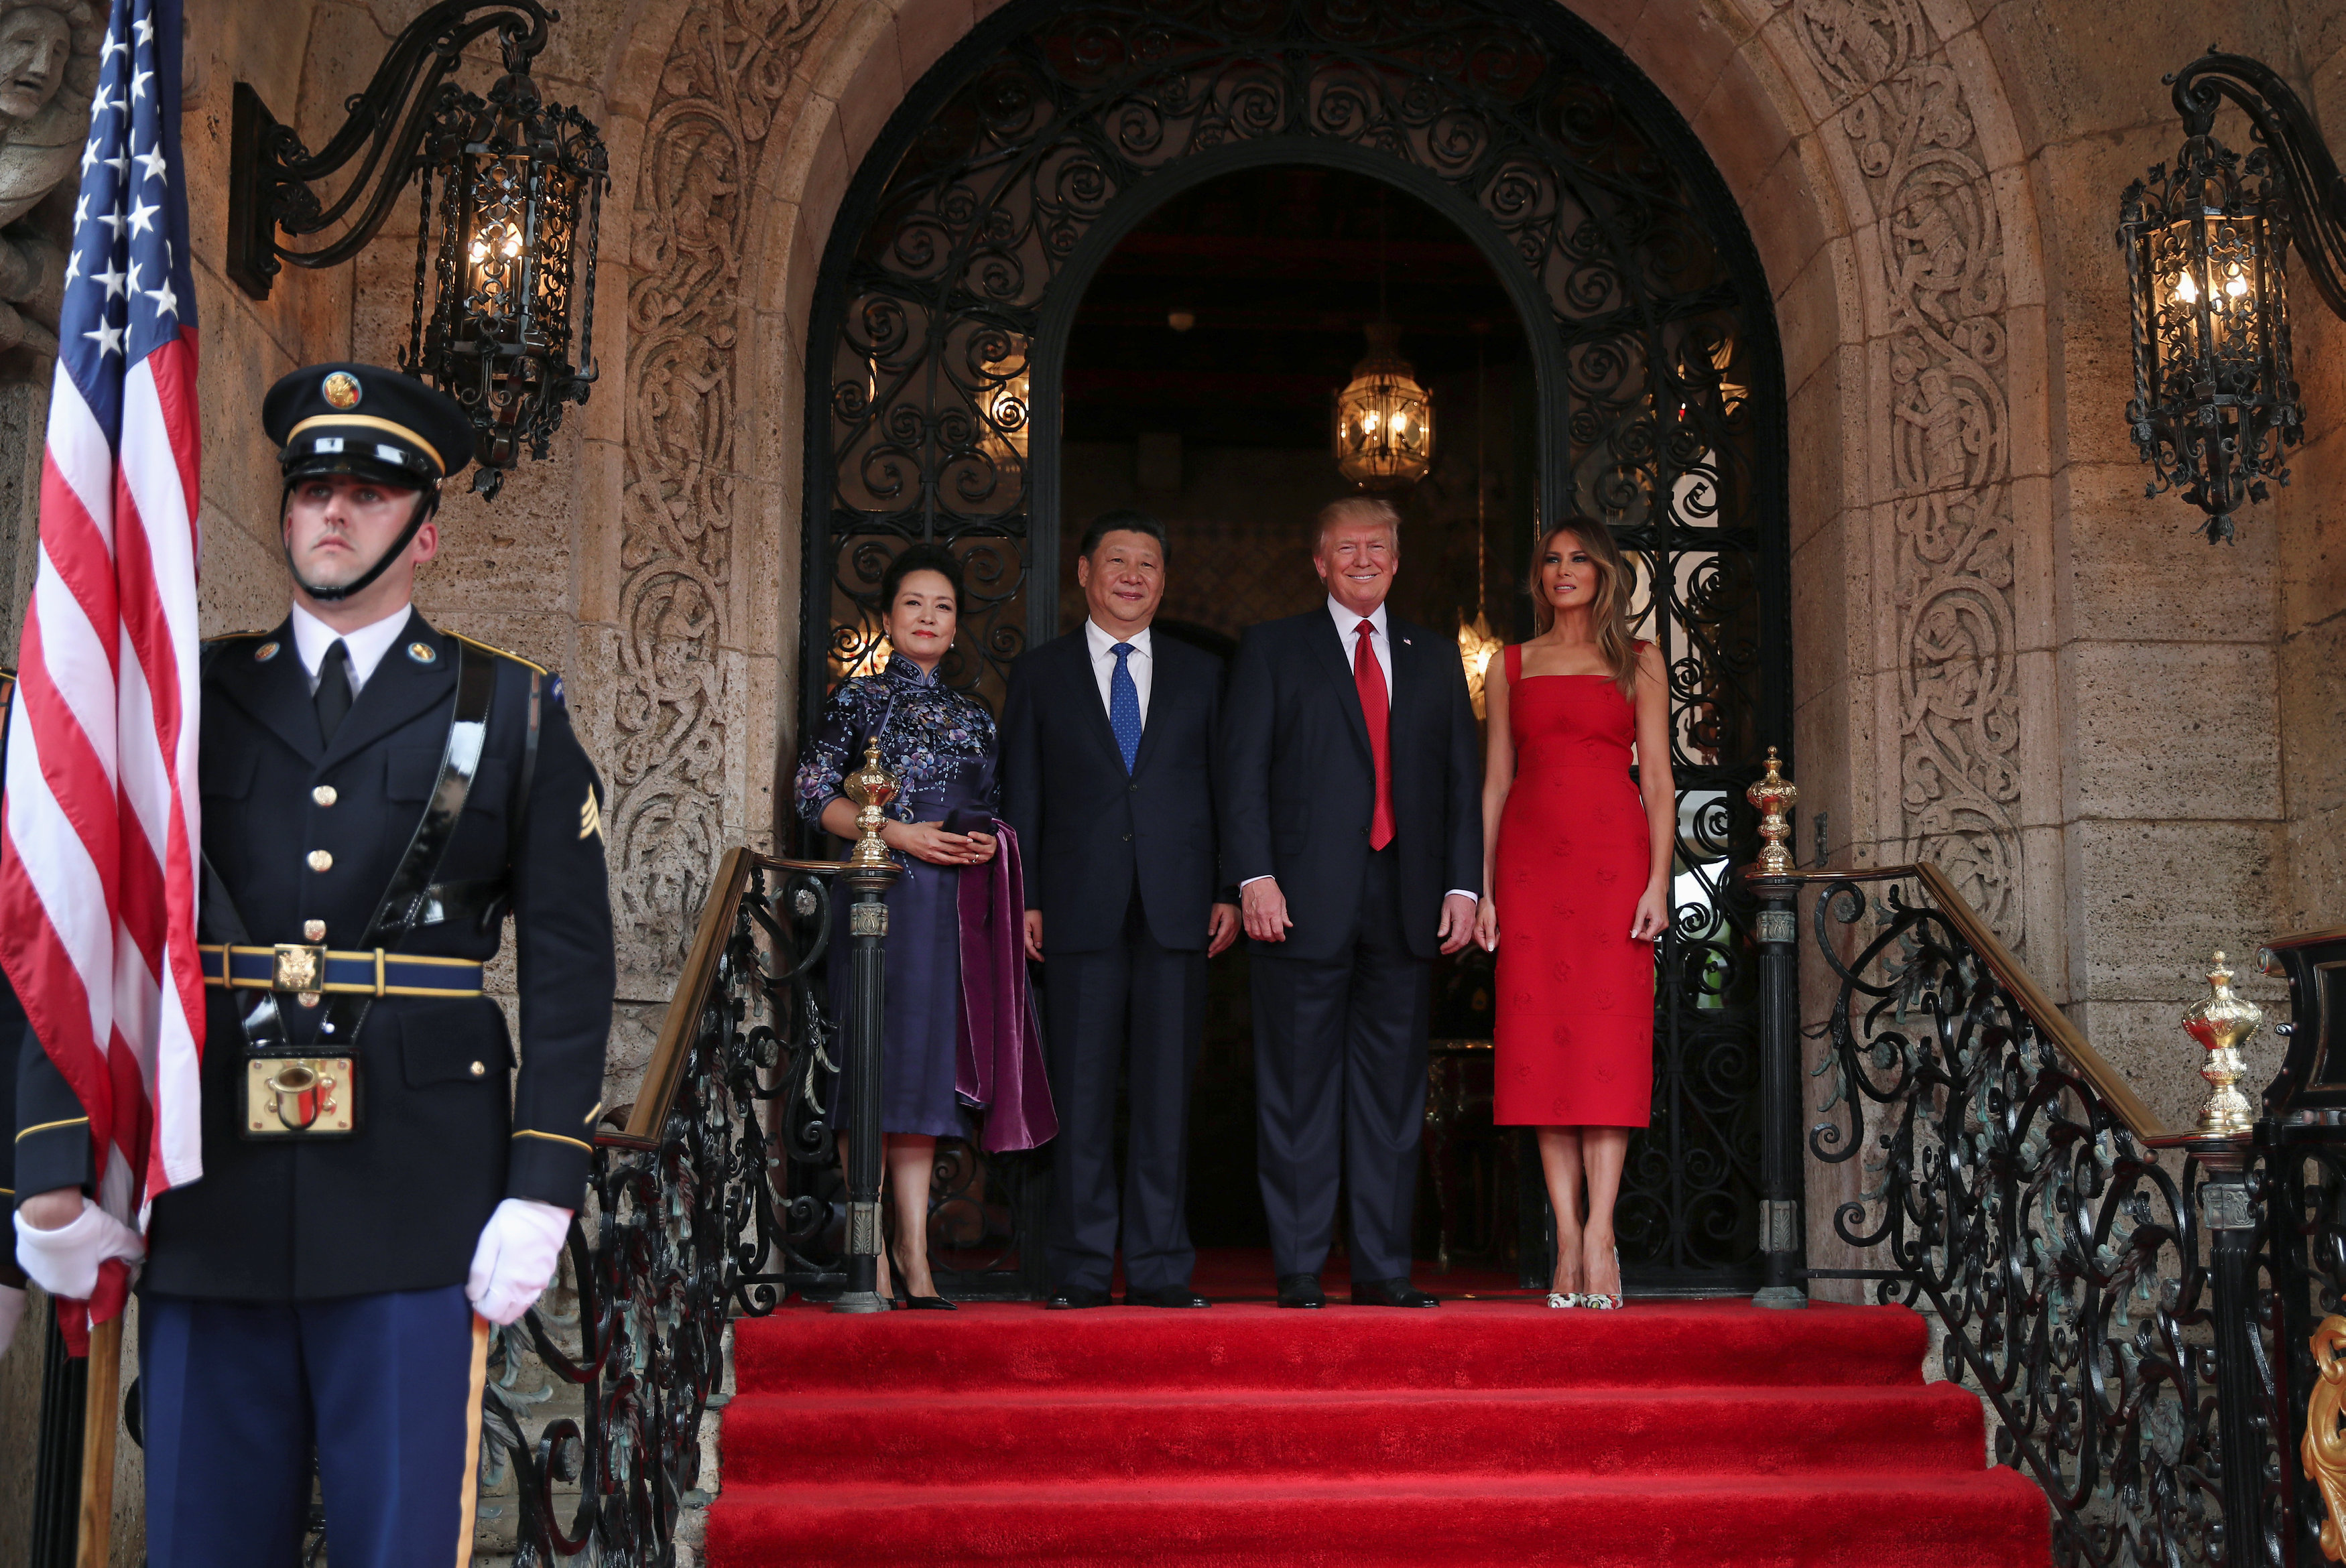 U.S. President Donald Trump and First Lady Melania Trump welcome Chinese President Xi Jinping and first lady Peng Liyuan at Mar-a-Lago estate in Palm Beach, Florida, U.S., April 6, 2017. REUTERS/Carlos Barria